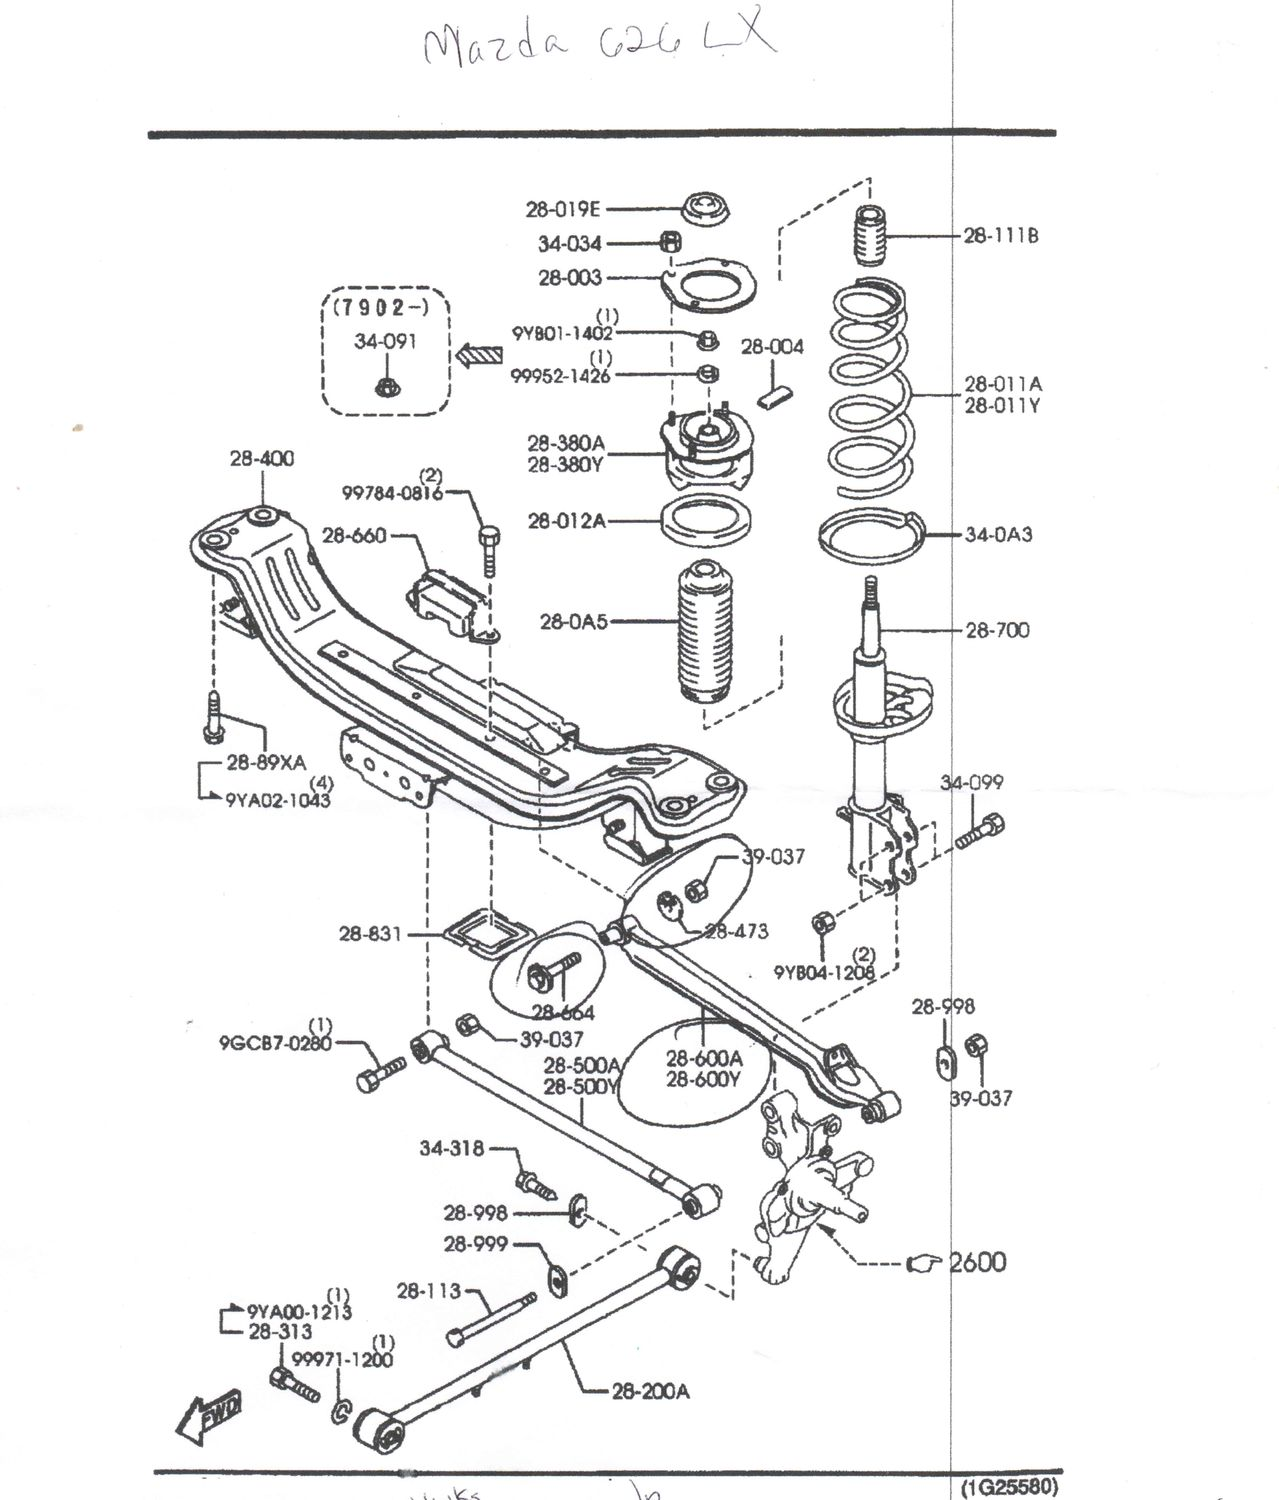 Mazda 626 Parts Diagram Suspension Reinvent Your Wiring 95 Engine Rear Trailing Arm Part 28 600a Or 600y 1993 2002 Rh Mazda626 Net 1997